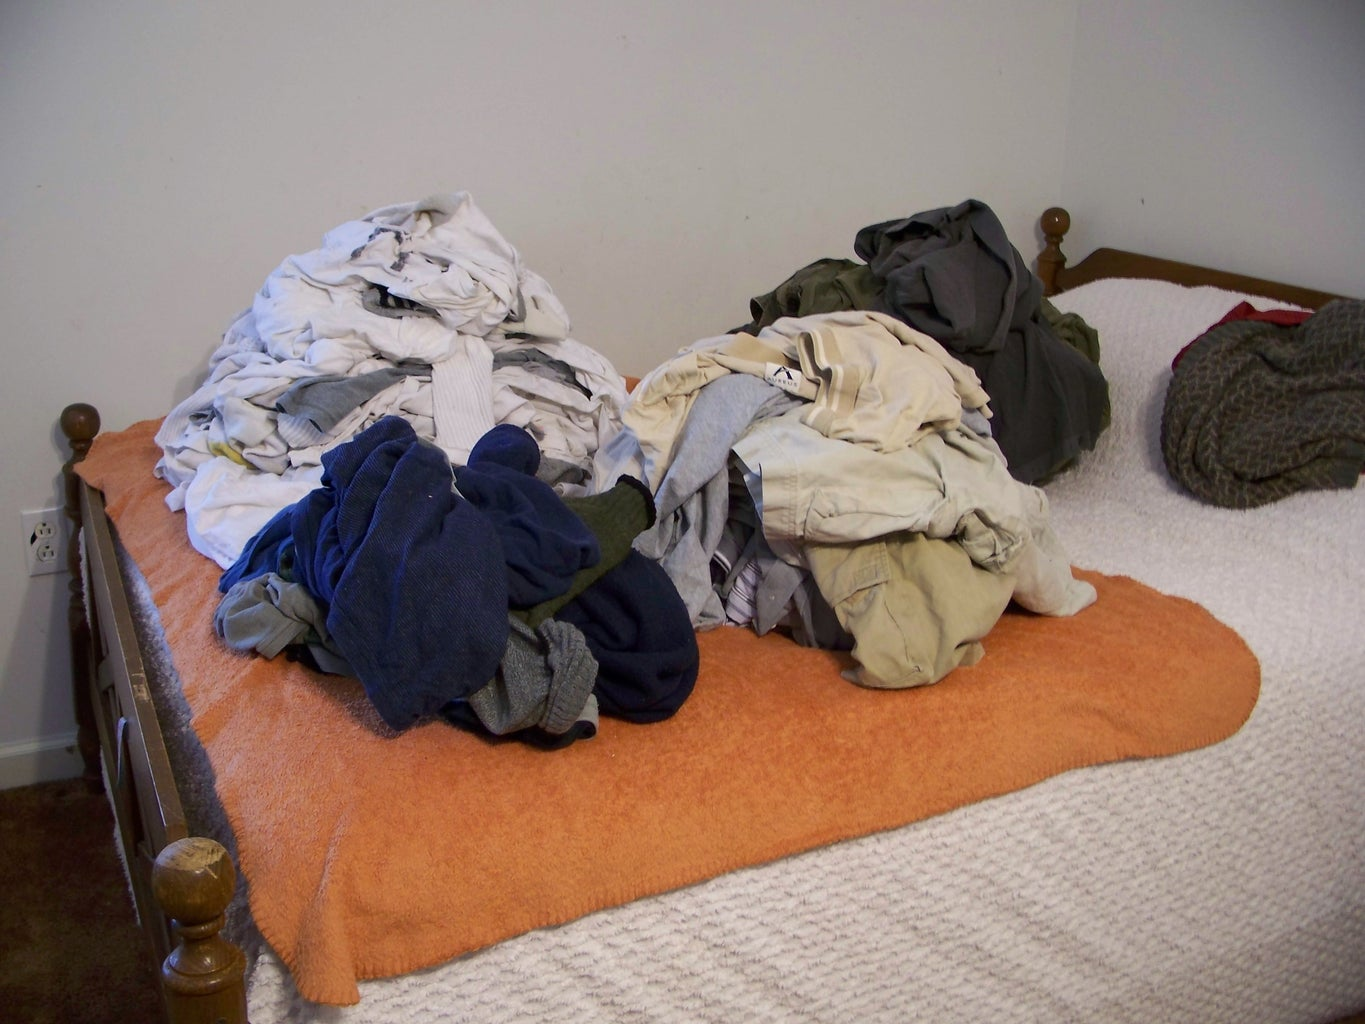 Step Two: Laundry